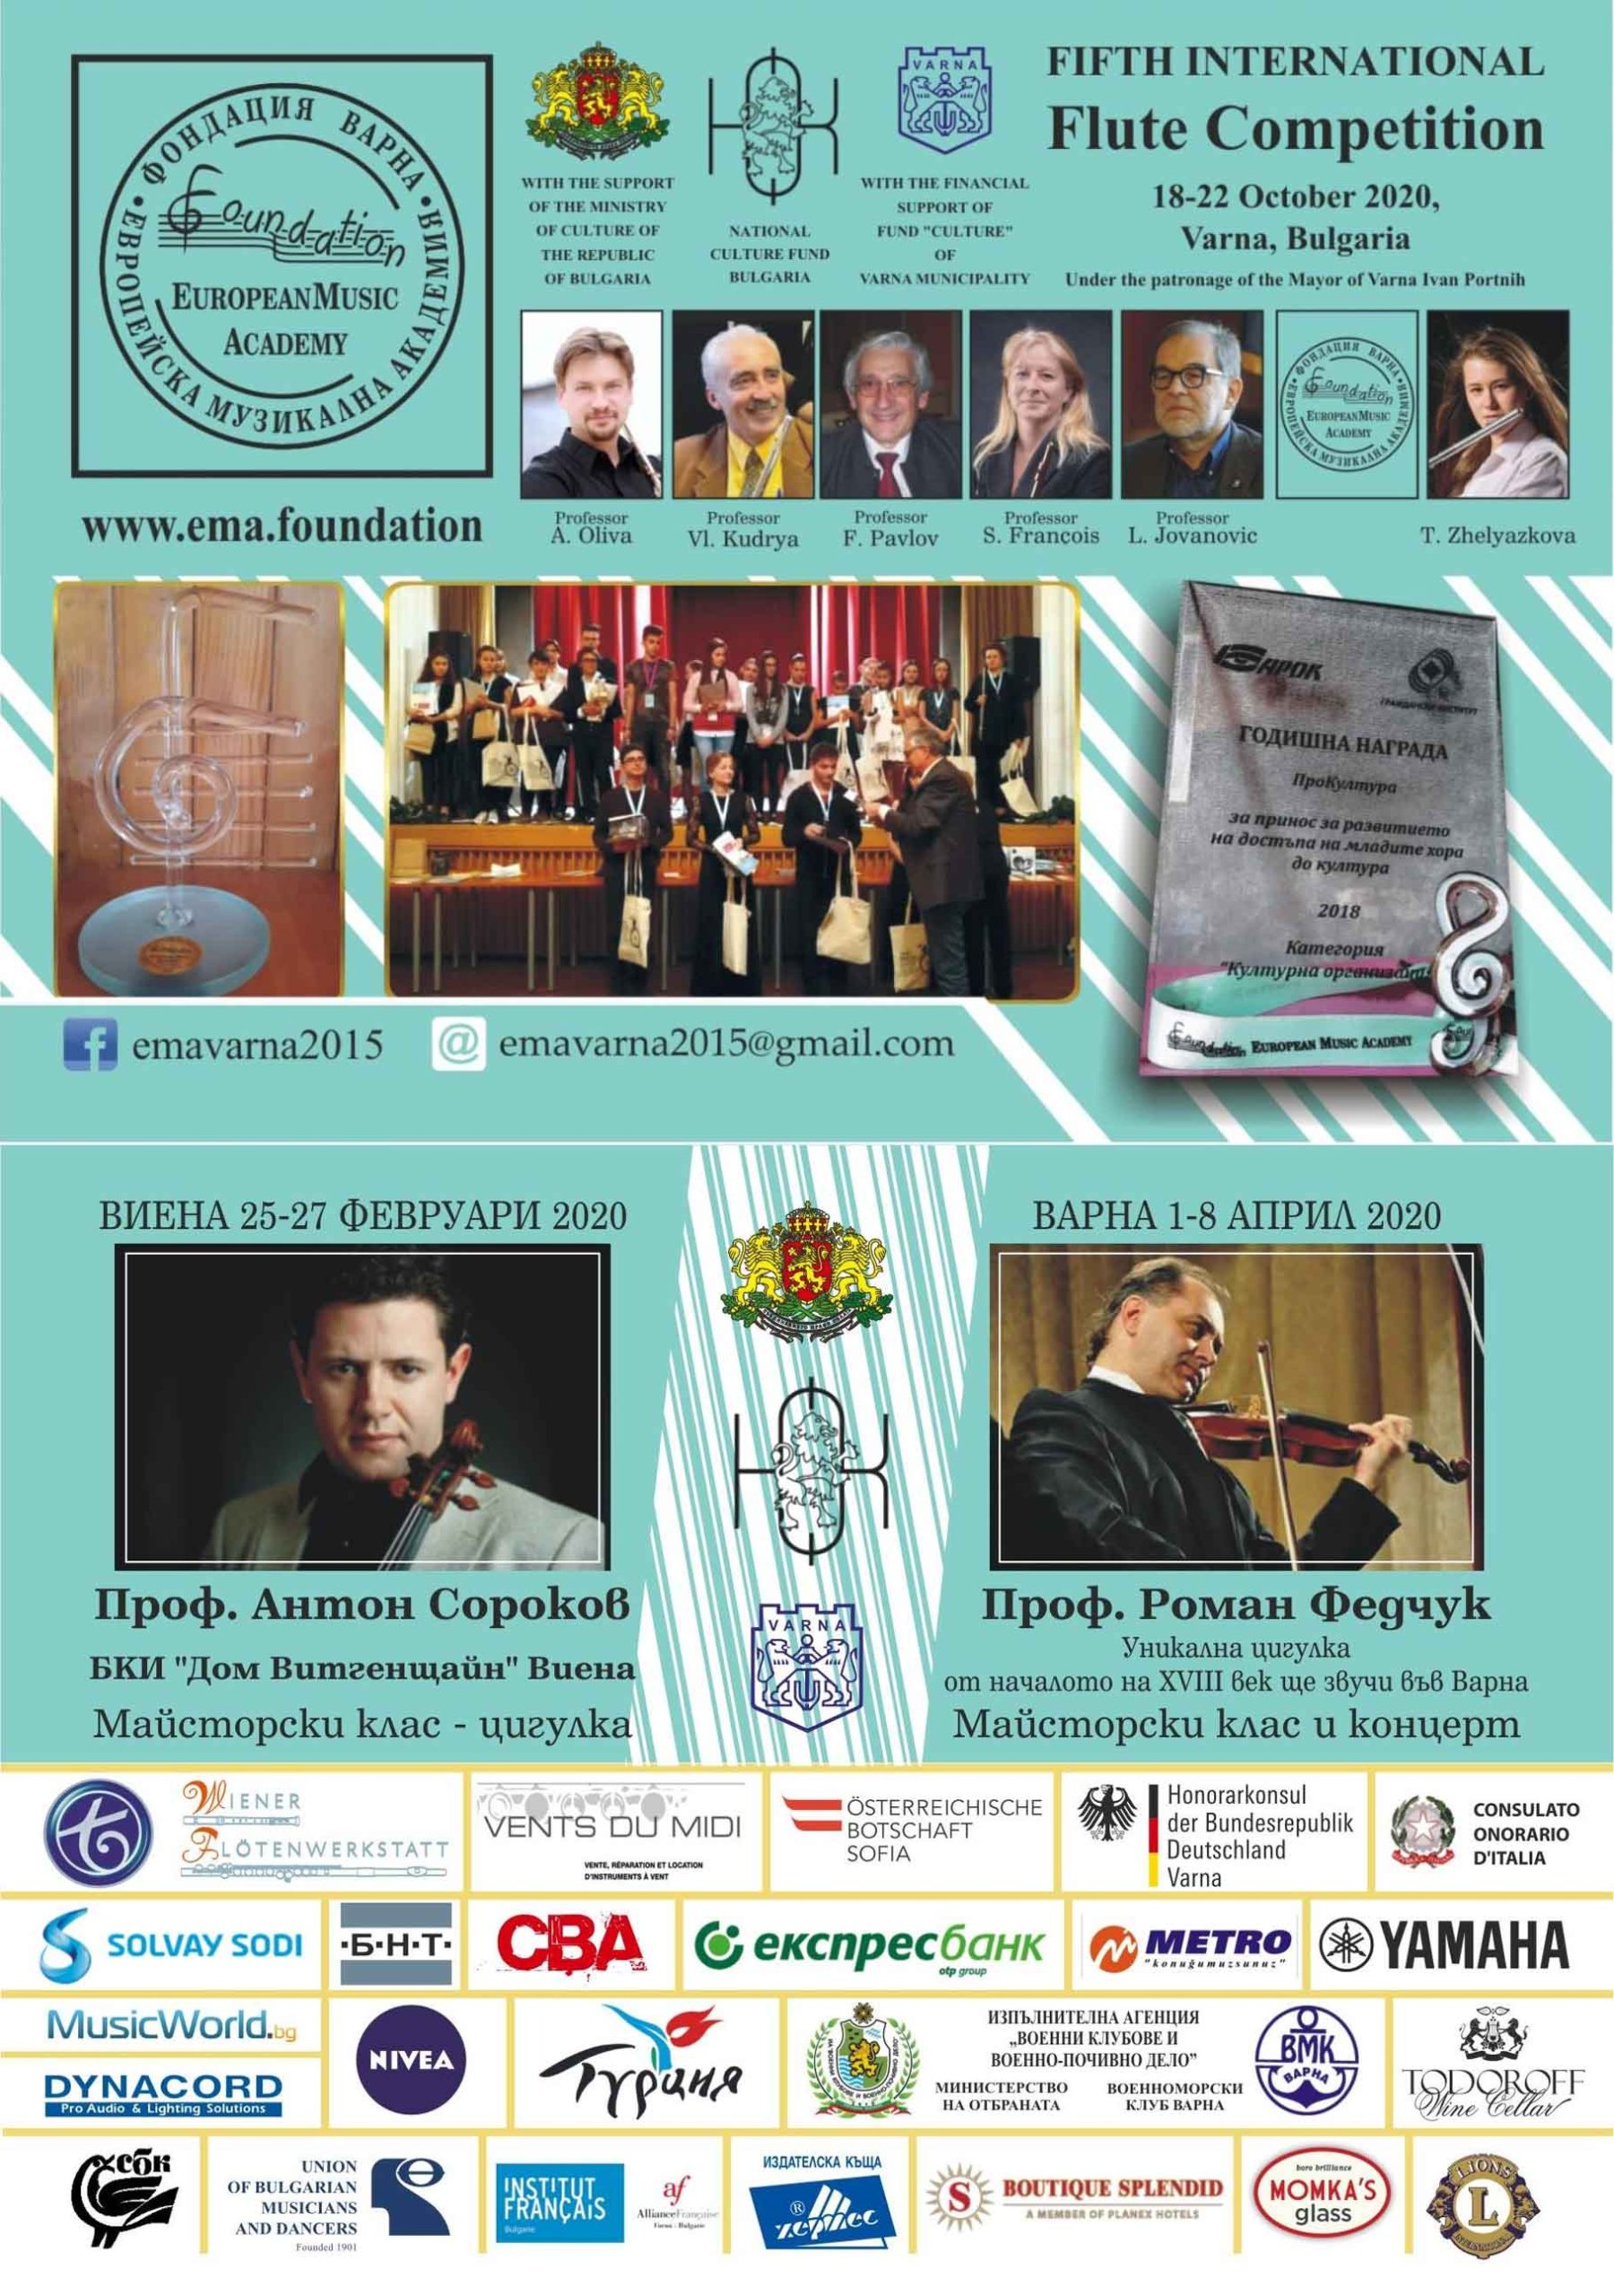 FIFTH INTERNATIONAL FLUTE COMPETITION